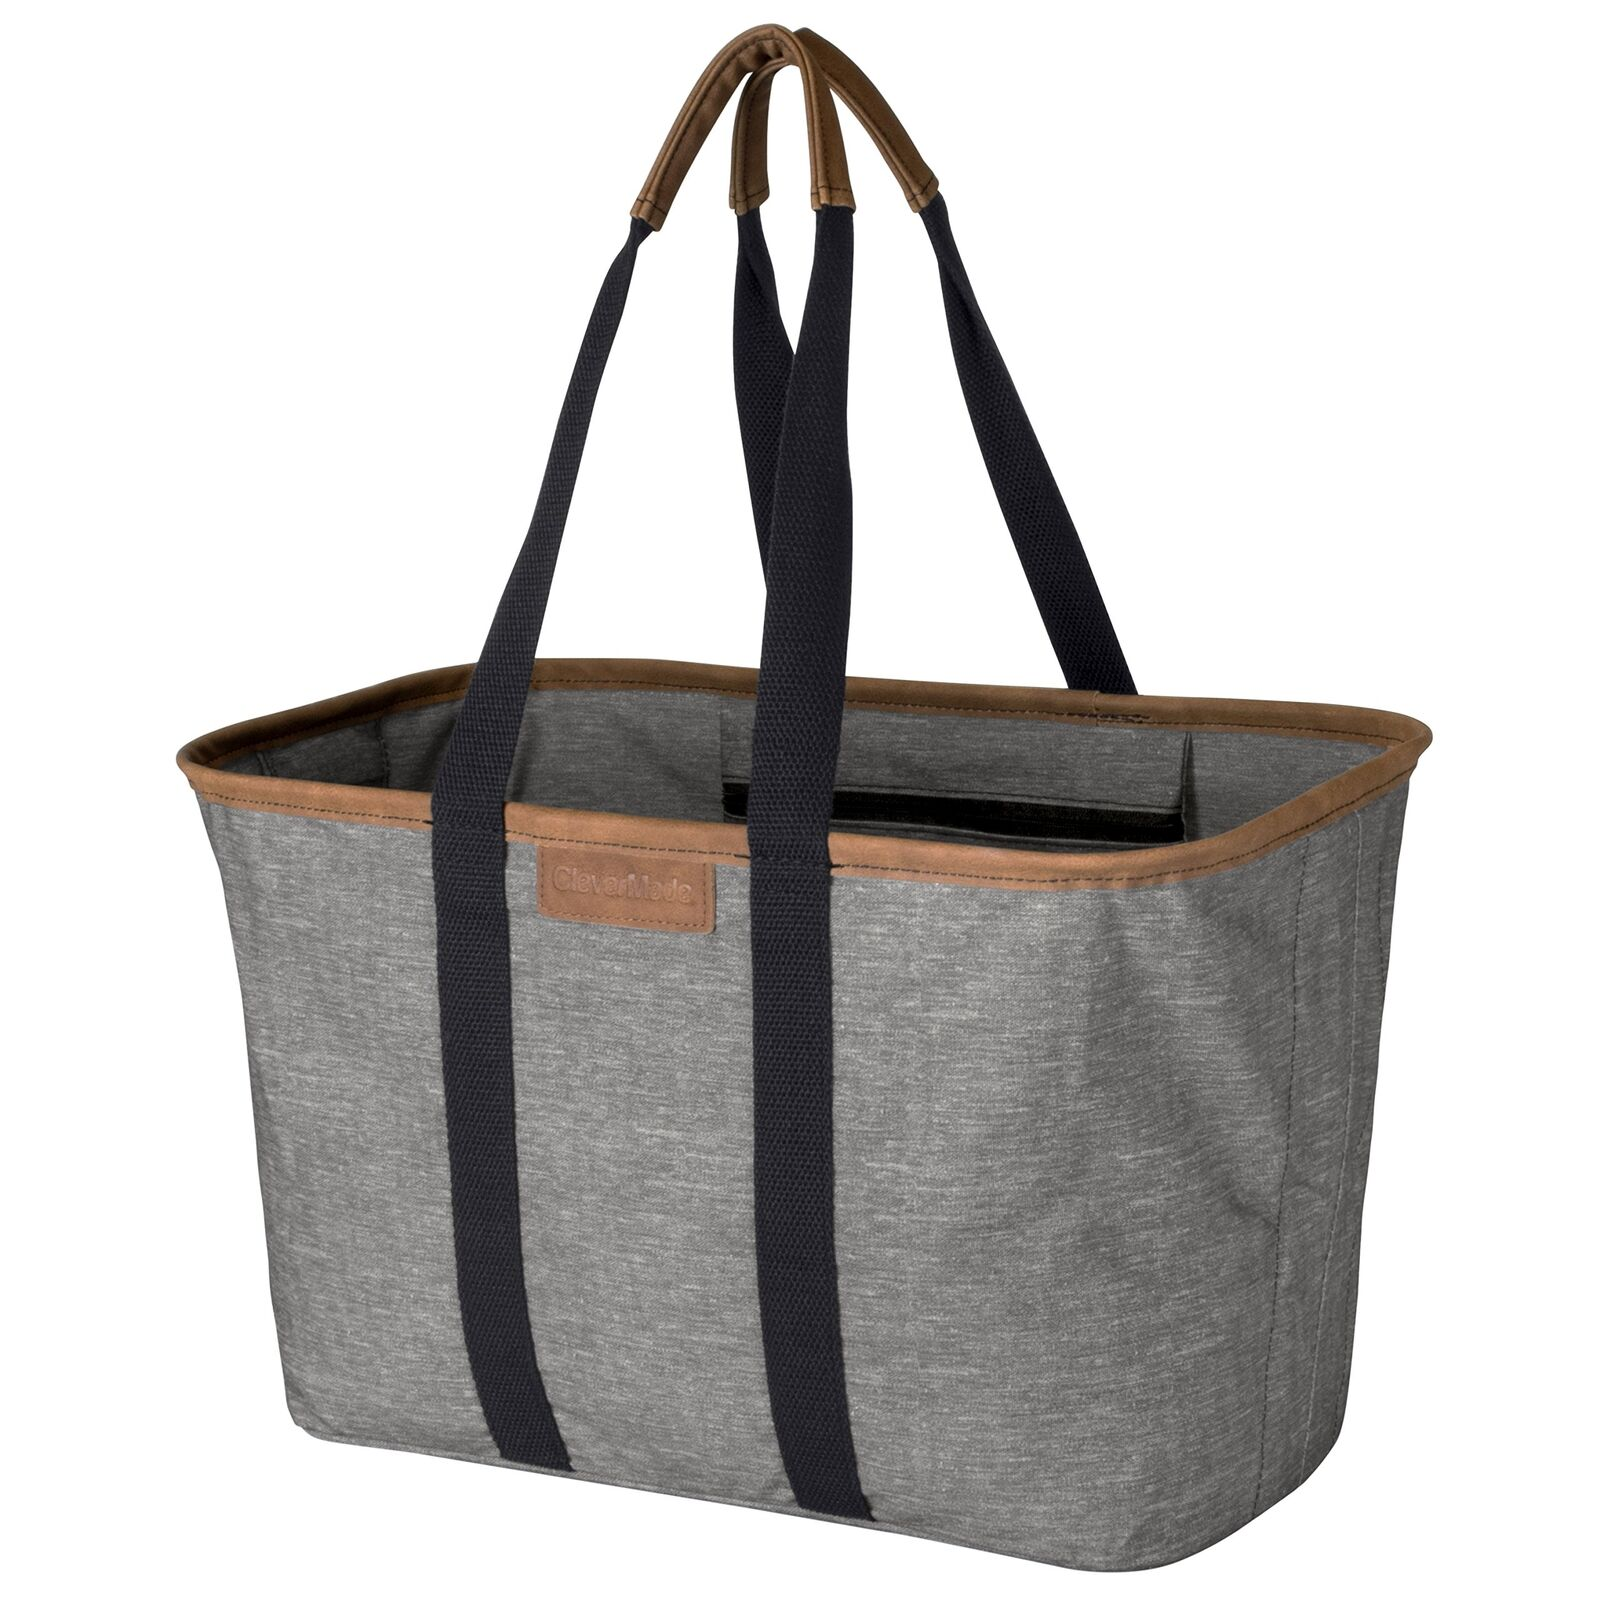 CleverMade 30L SnapBasket LUXE - Reusable Collapsible Durable Grocery Shopping